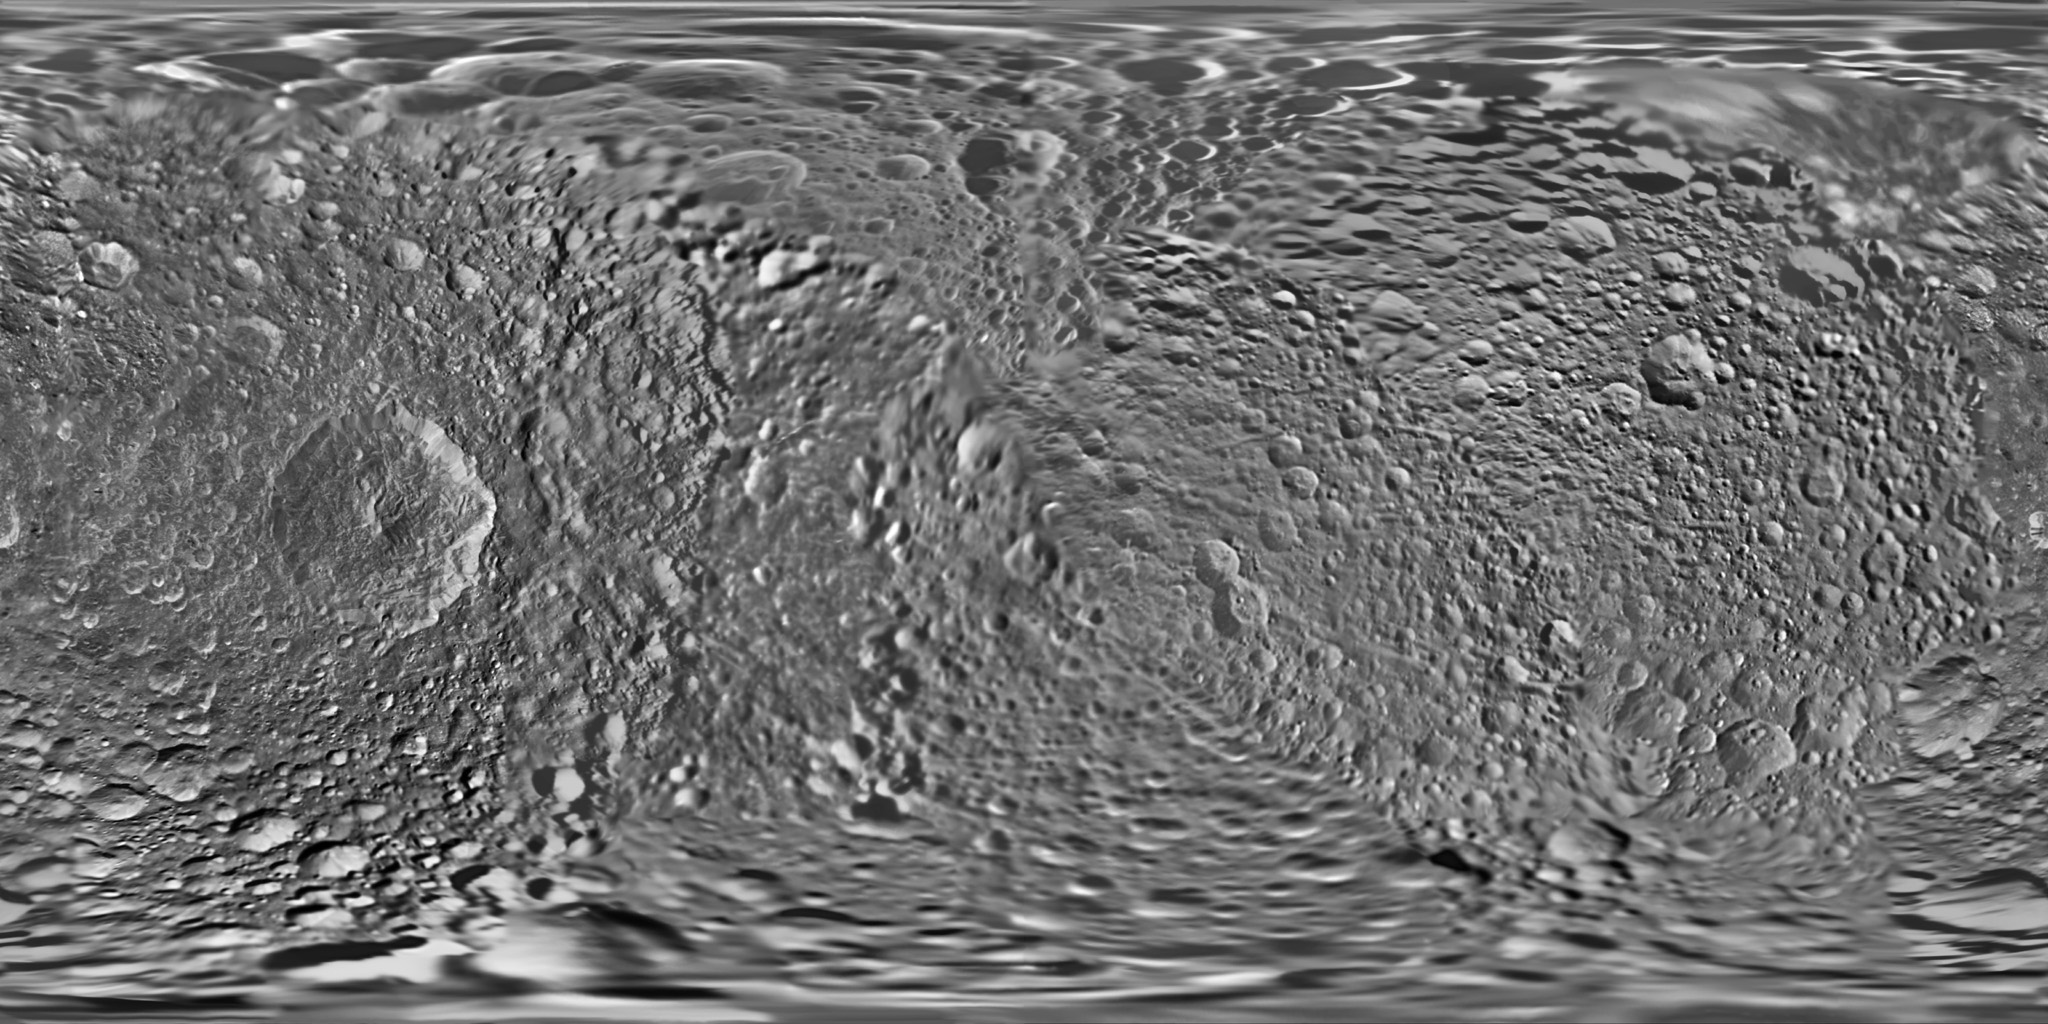 This global map of Saturn's moon Mimas was created using images taken during NASA's Cassini spacecraft flybys, with Voyager images filling in the gaps in Cassini's coverage.